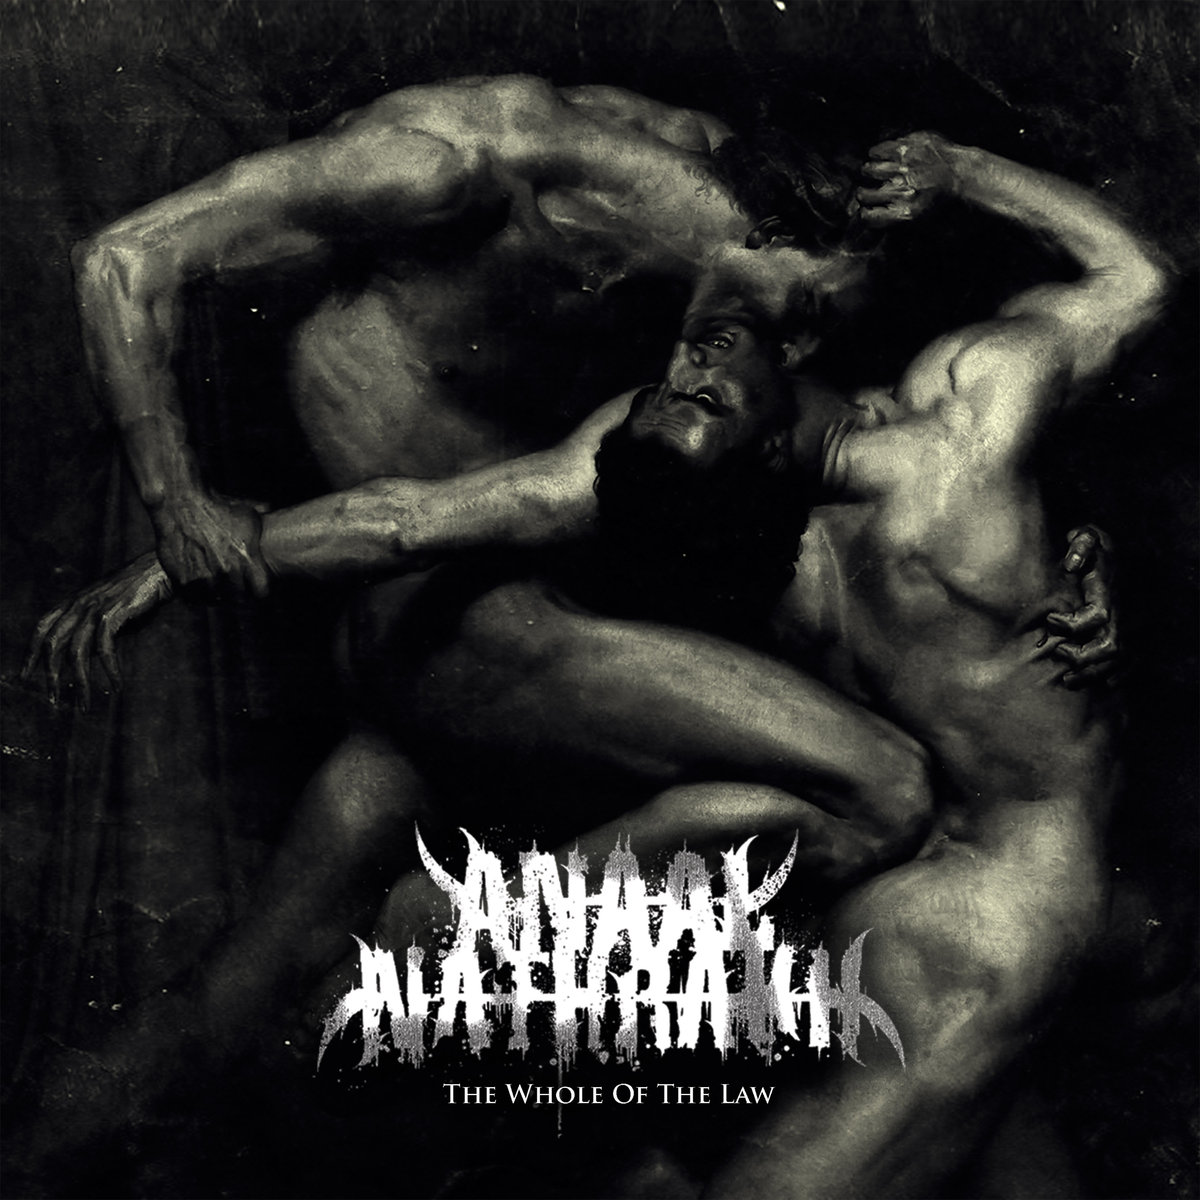 anaal-nathrakh-the-whole-of-the-law